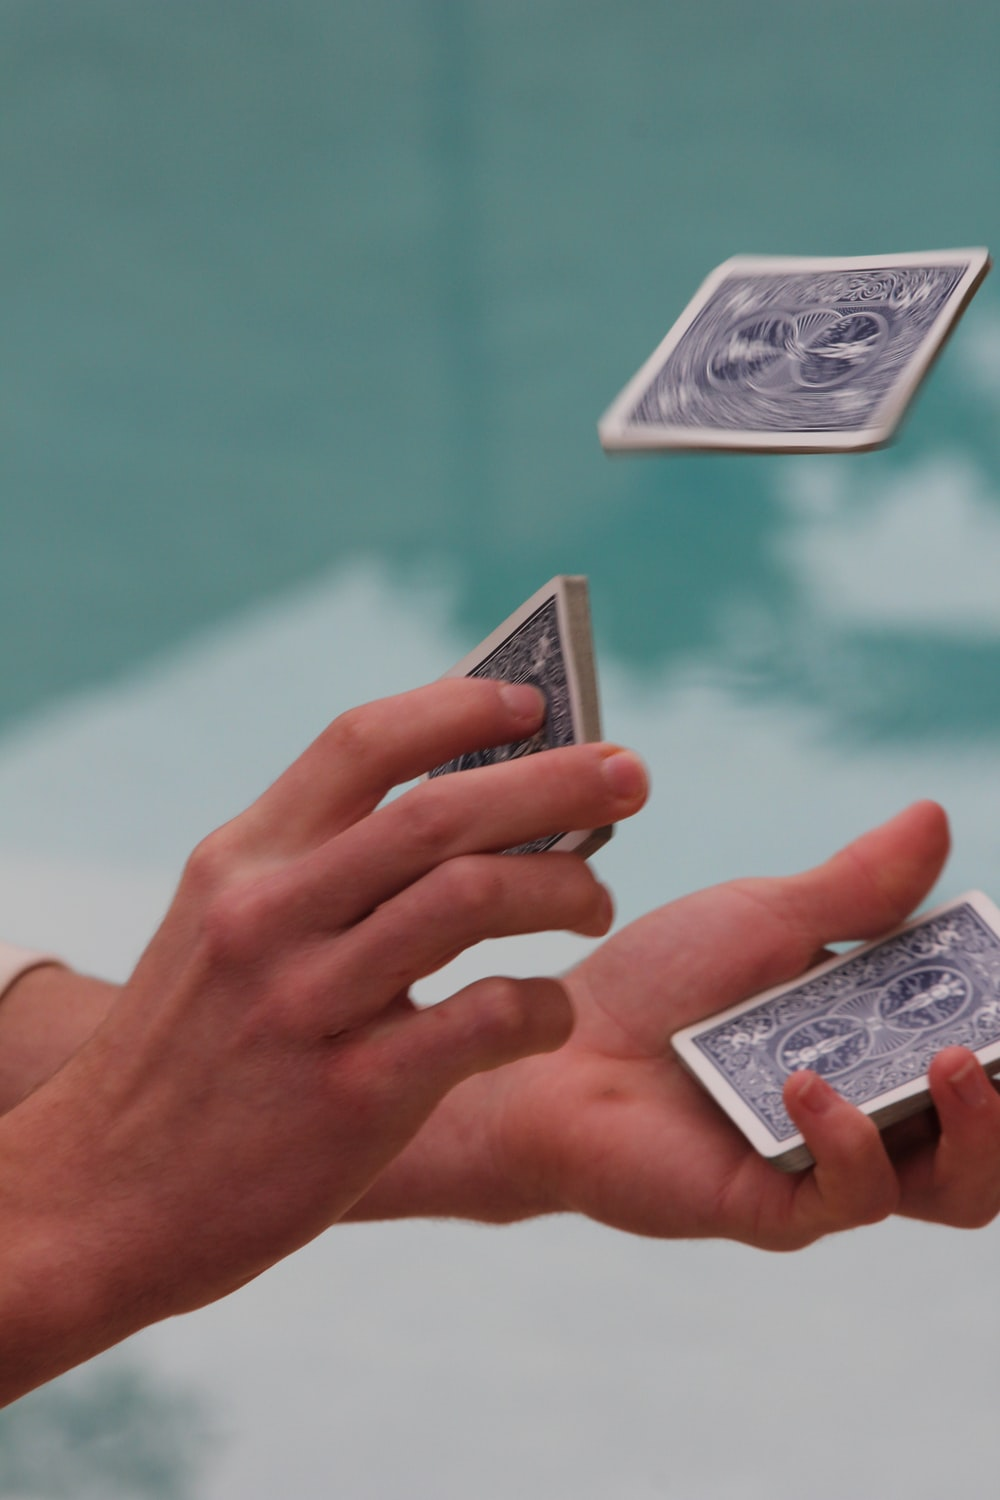 unknown person shuffling playing cards